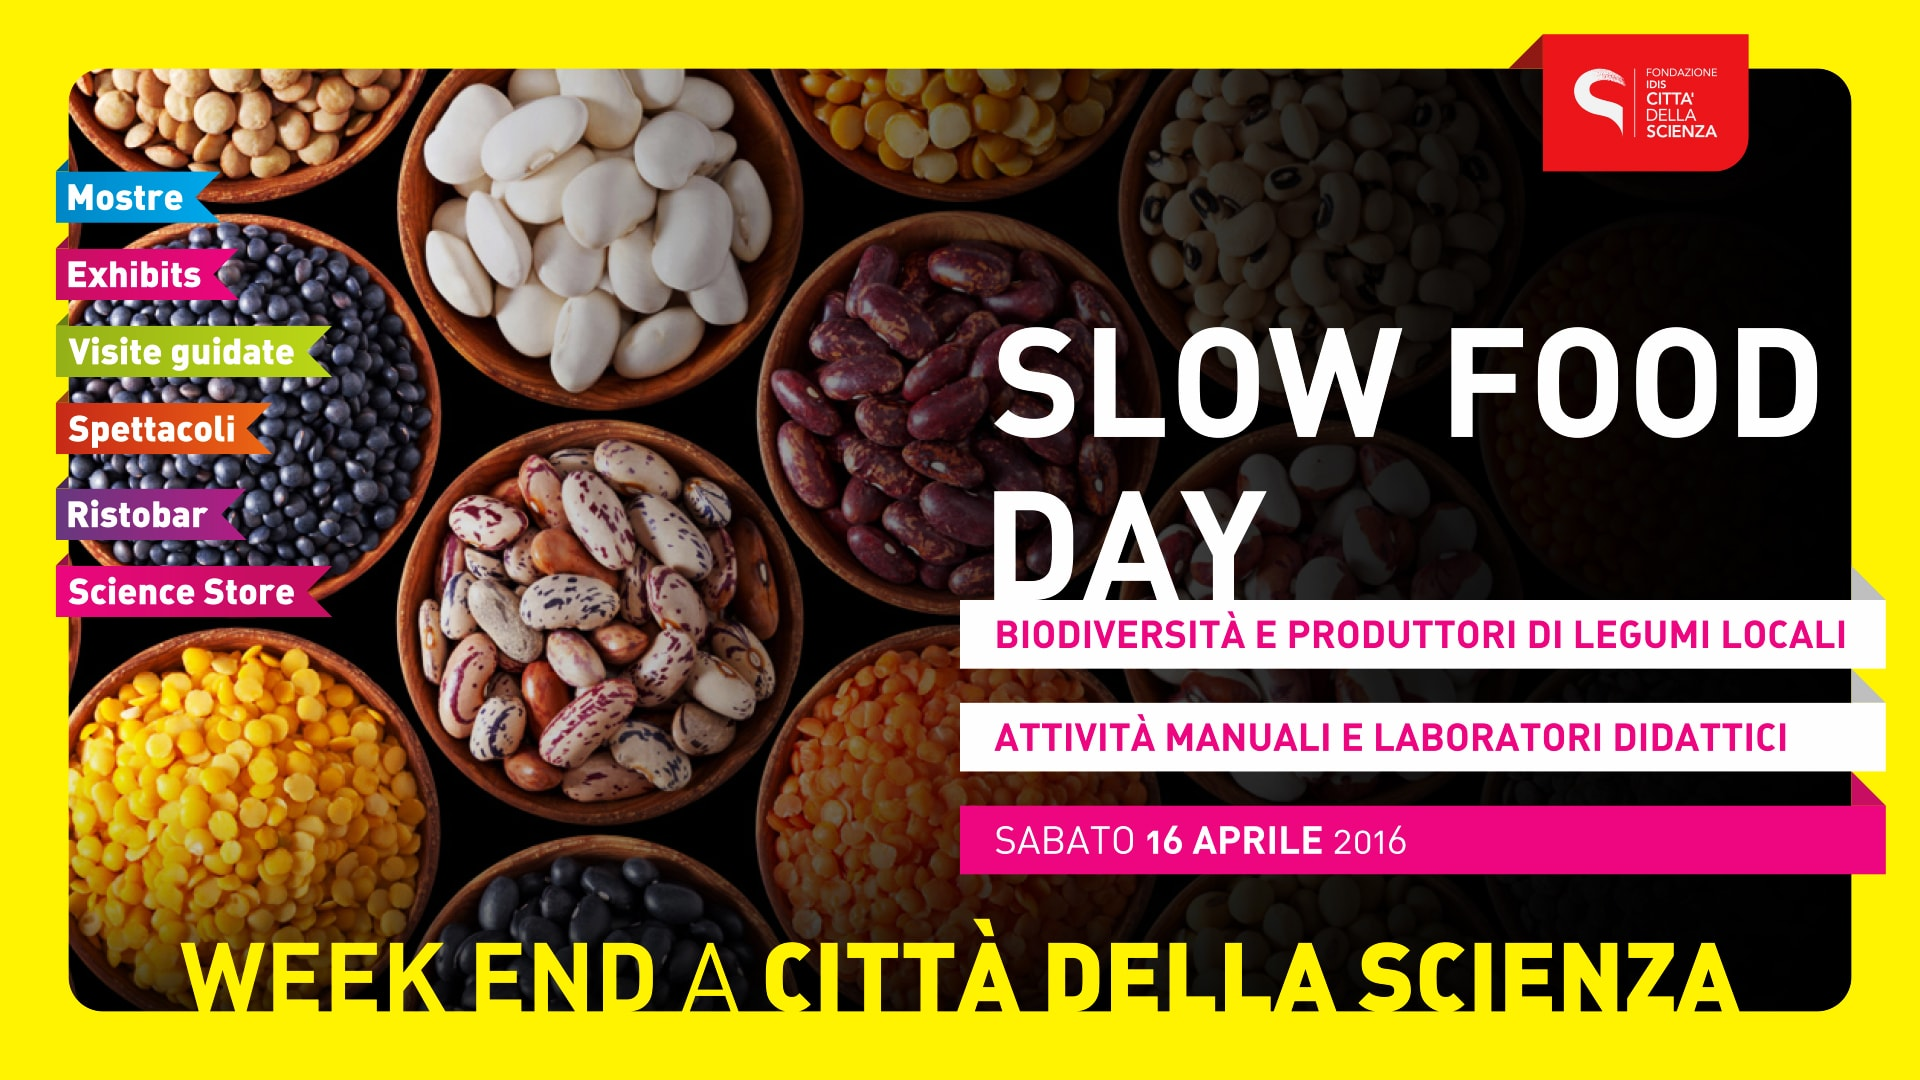 SLOW_FOOD_DAY_1920_x_1080-min